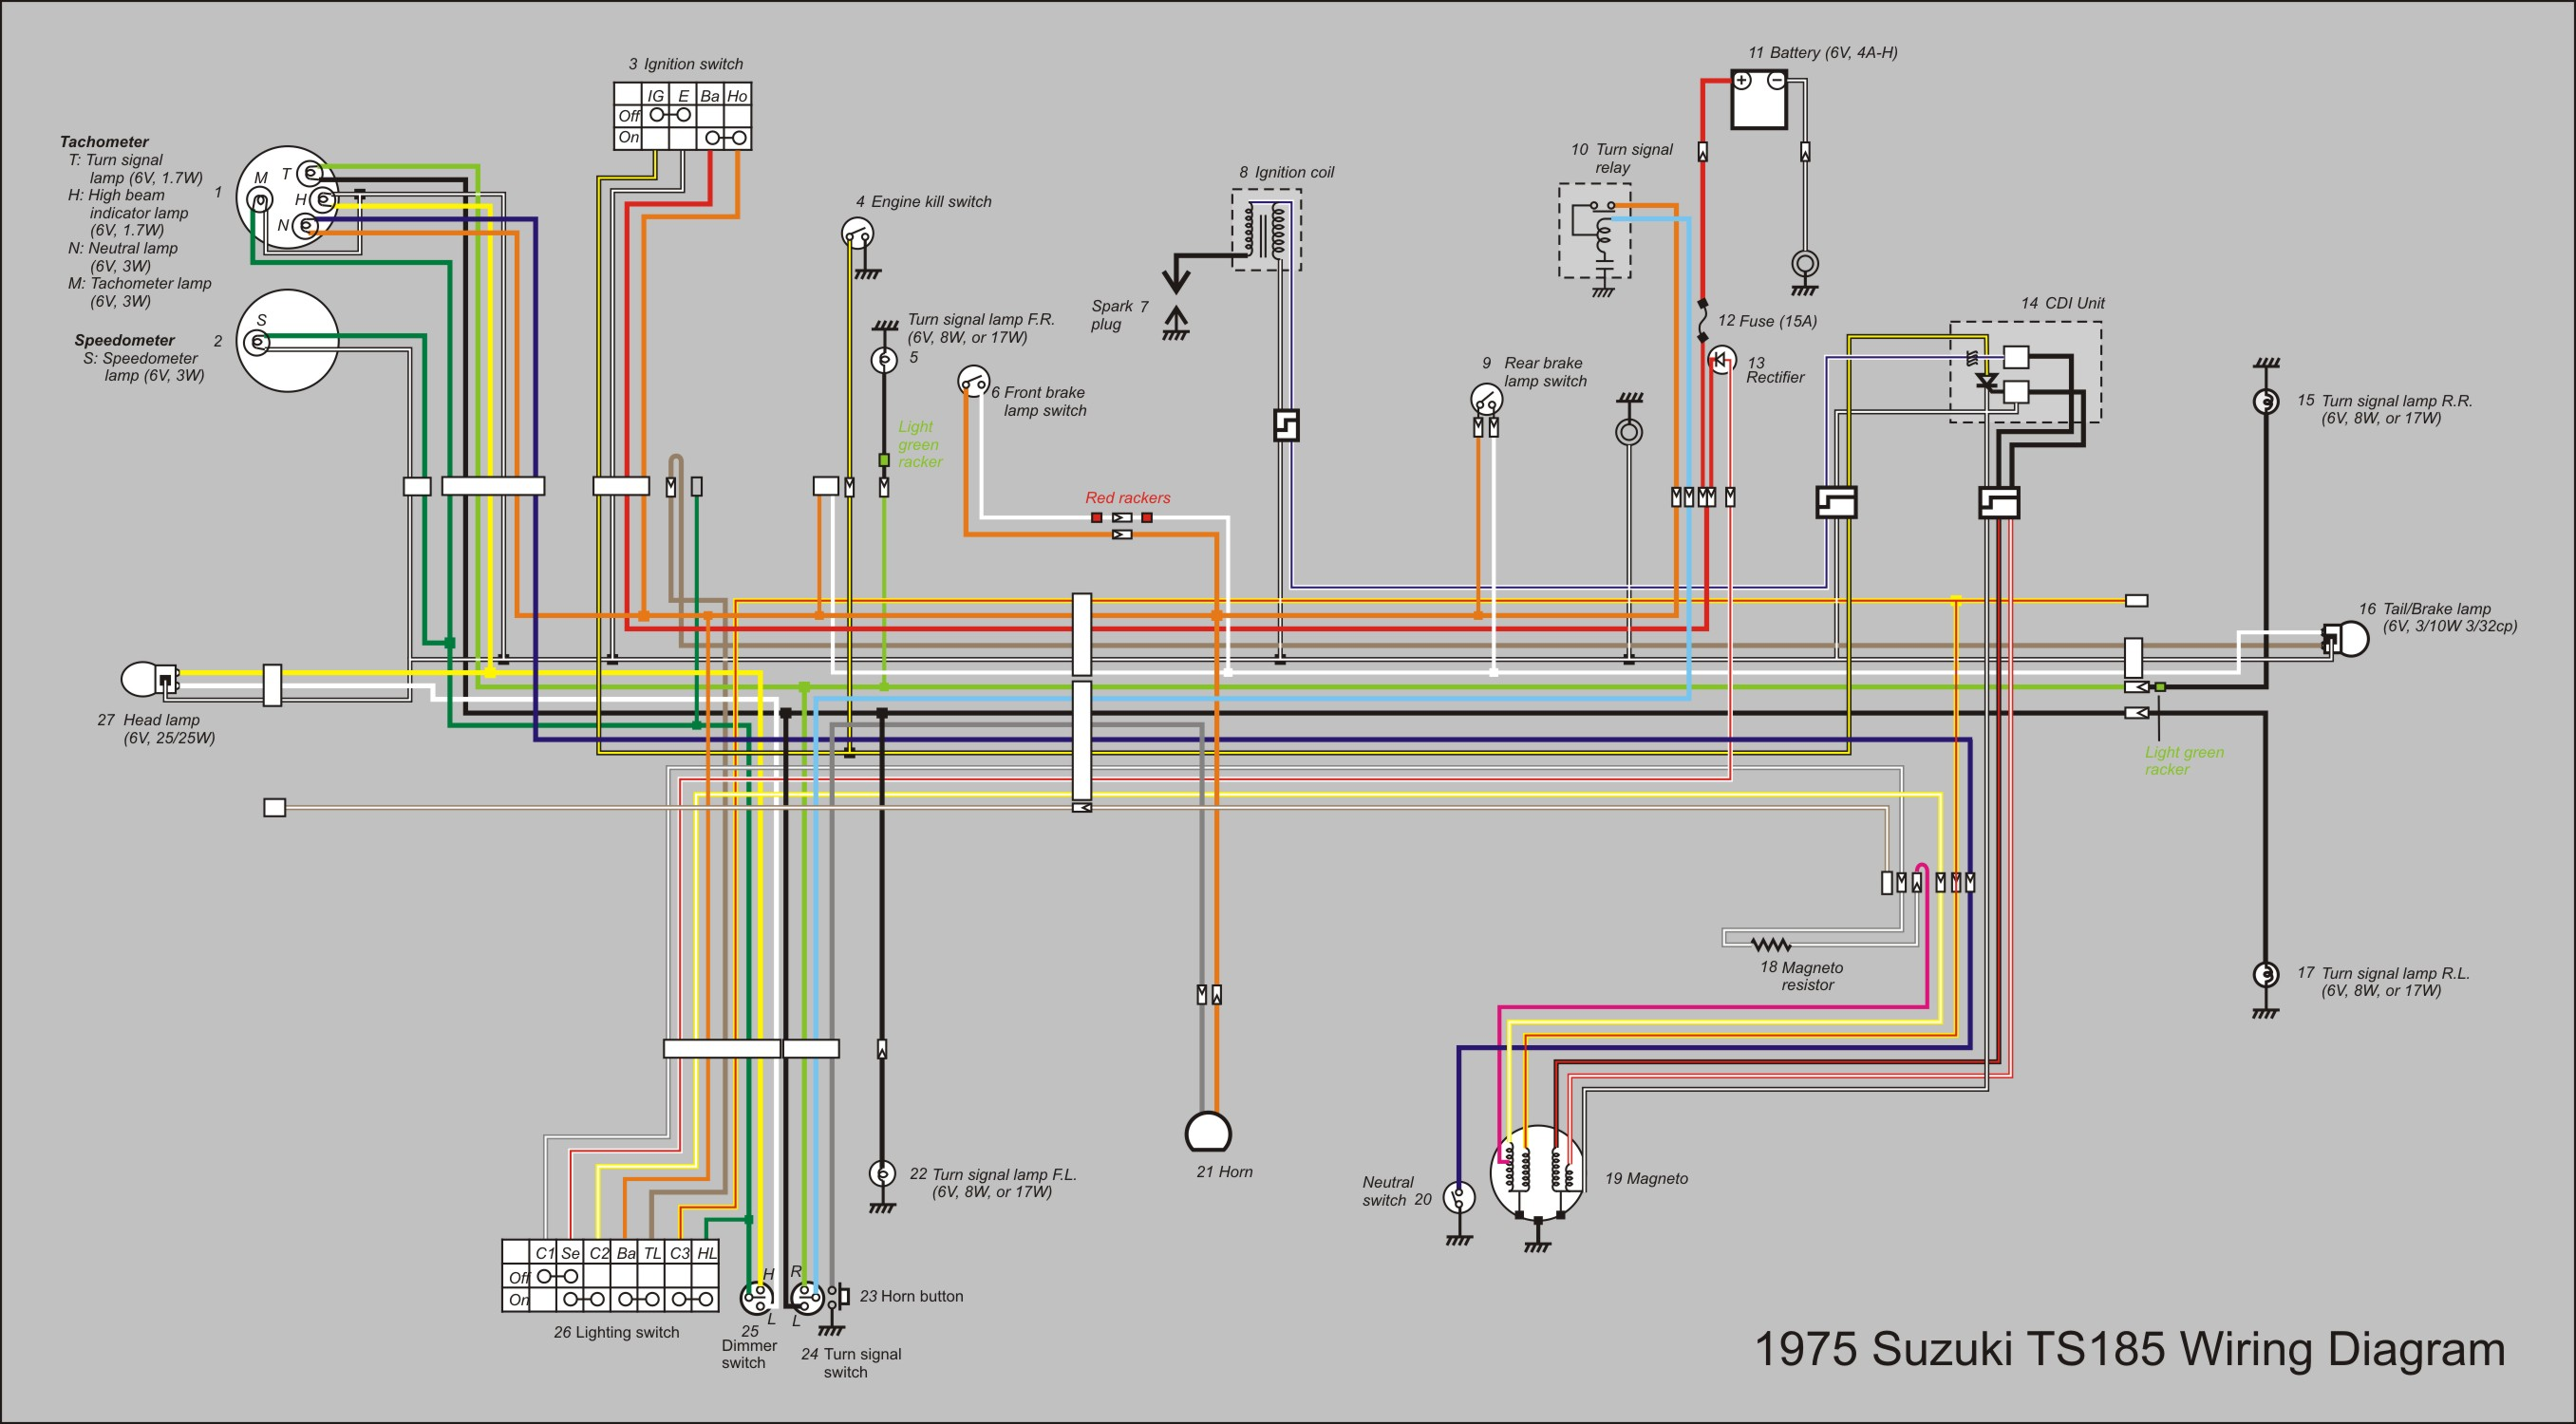 TS185_Wiring_Diagram_new file ts185 wiring diagram new jpg wikimedia commons yamaha dt 100 wiring diagram at reclaimingppi.co